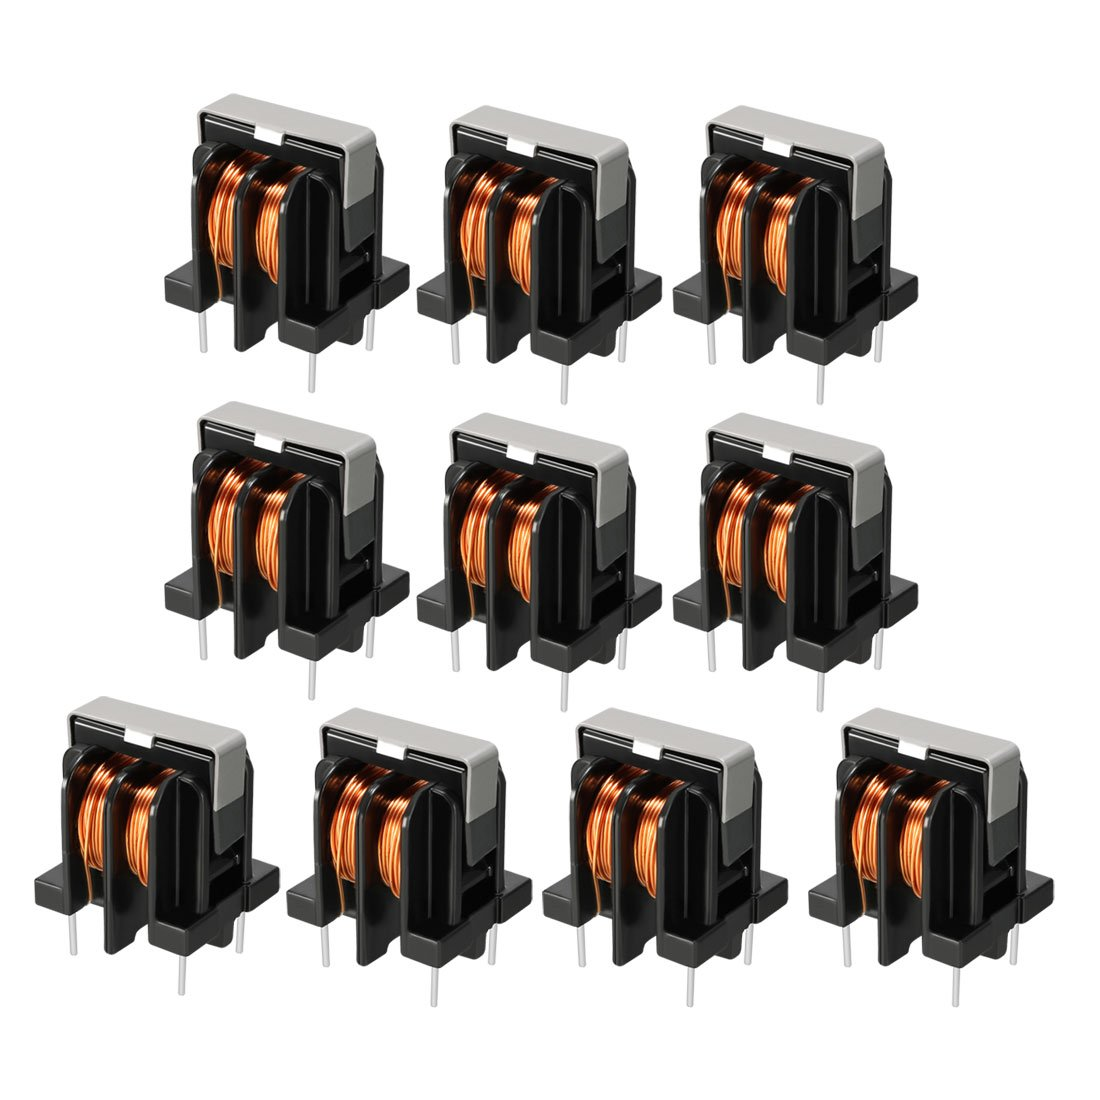 uxcell 10Pcs Toroid Magnetic Inductor Monolayer Wire Wind Wound 10mH Inductance Coil